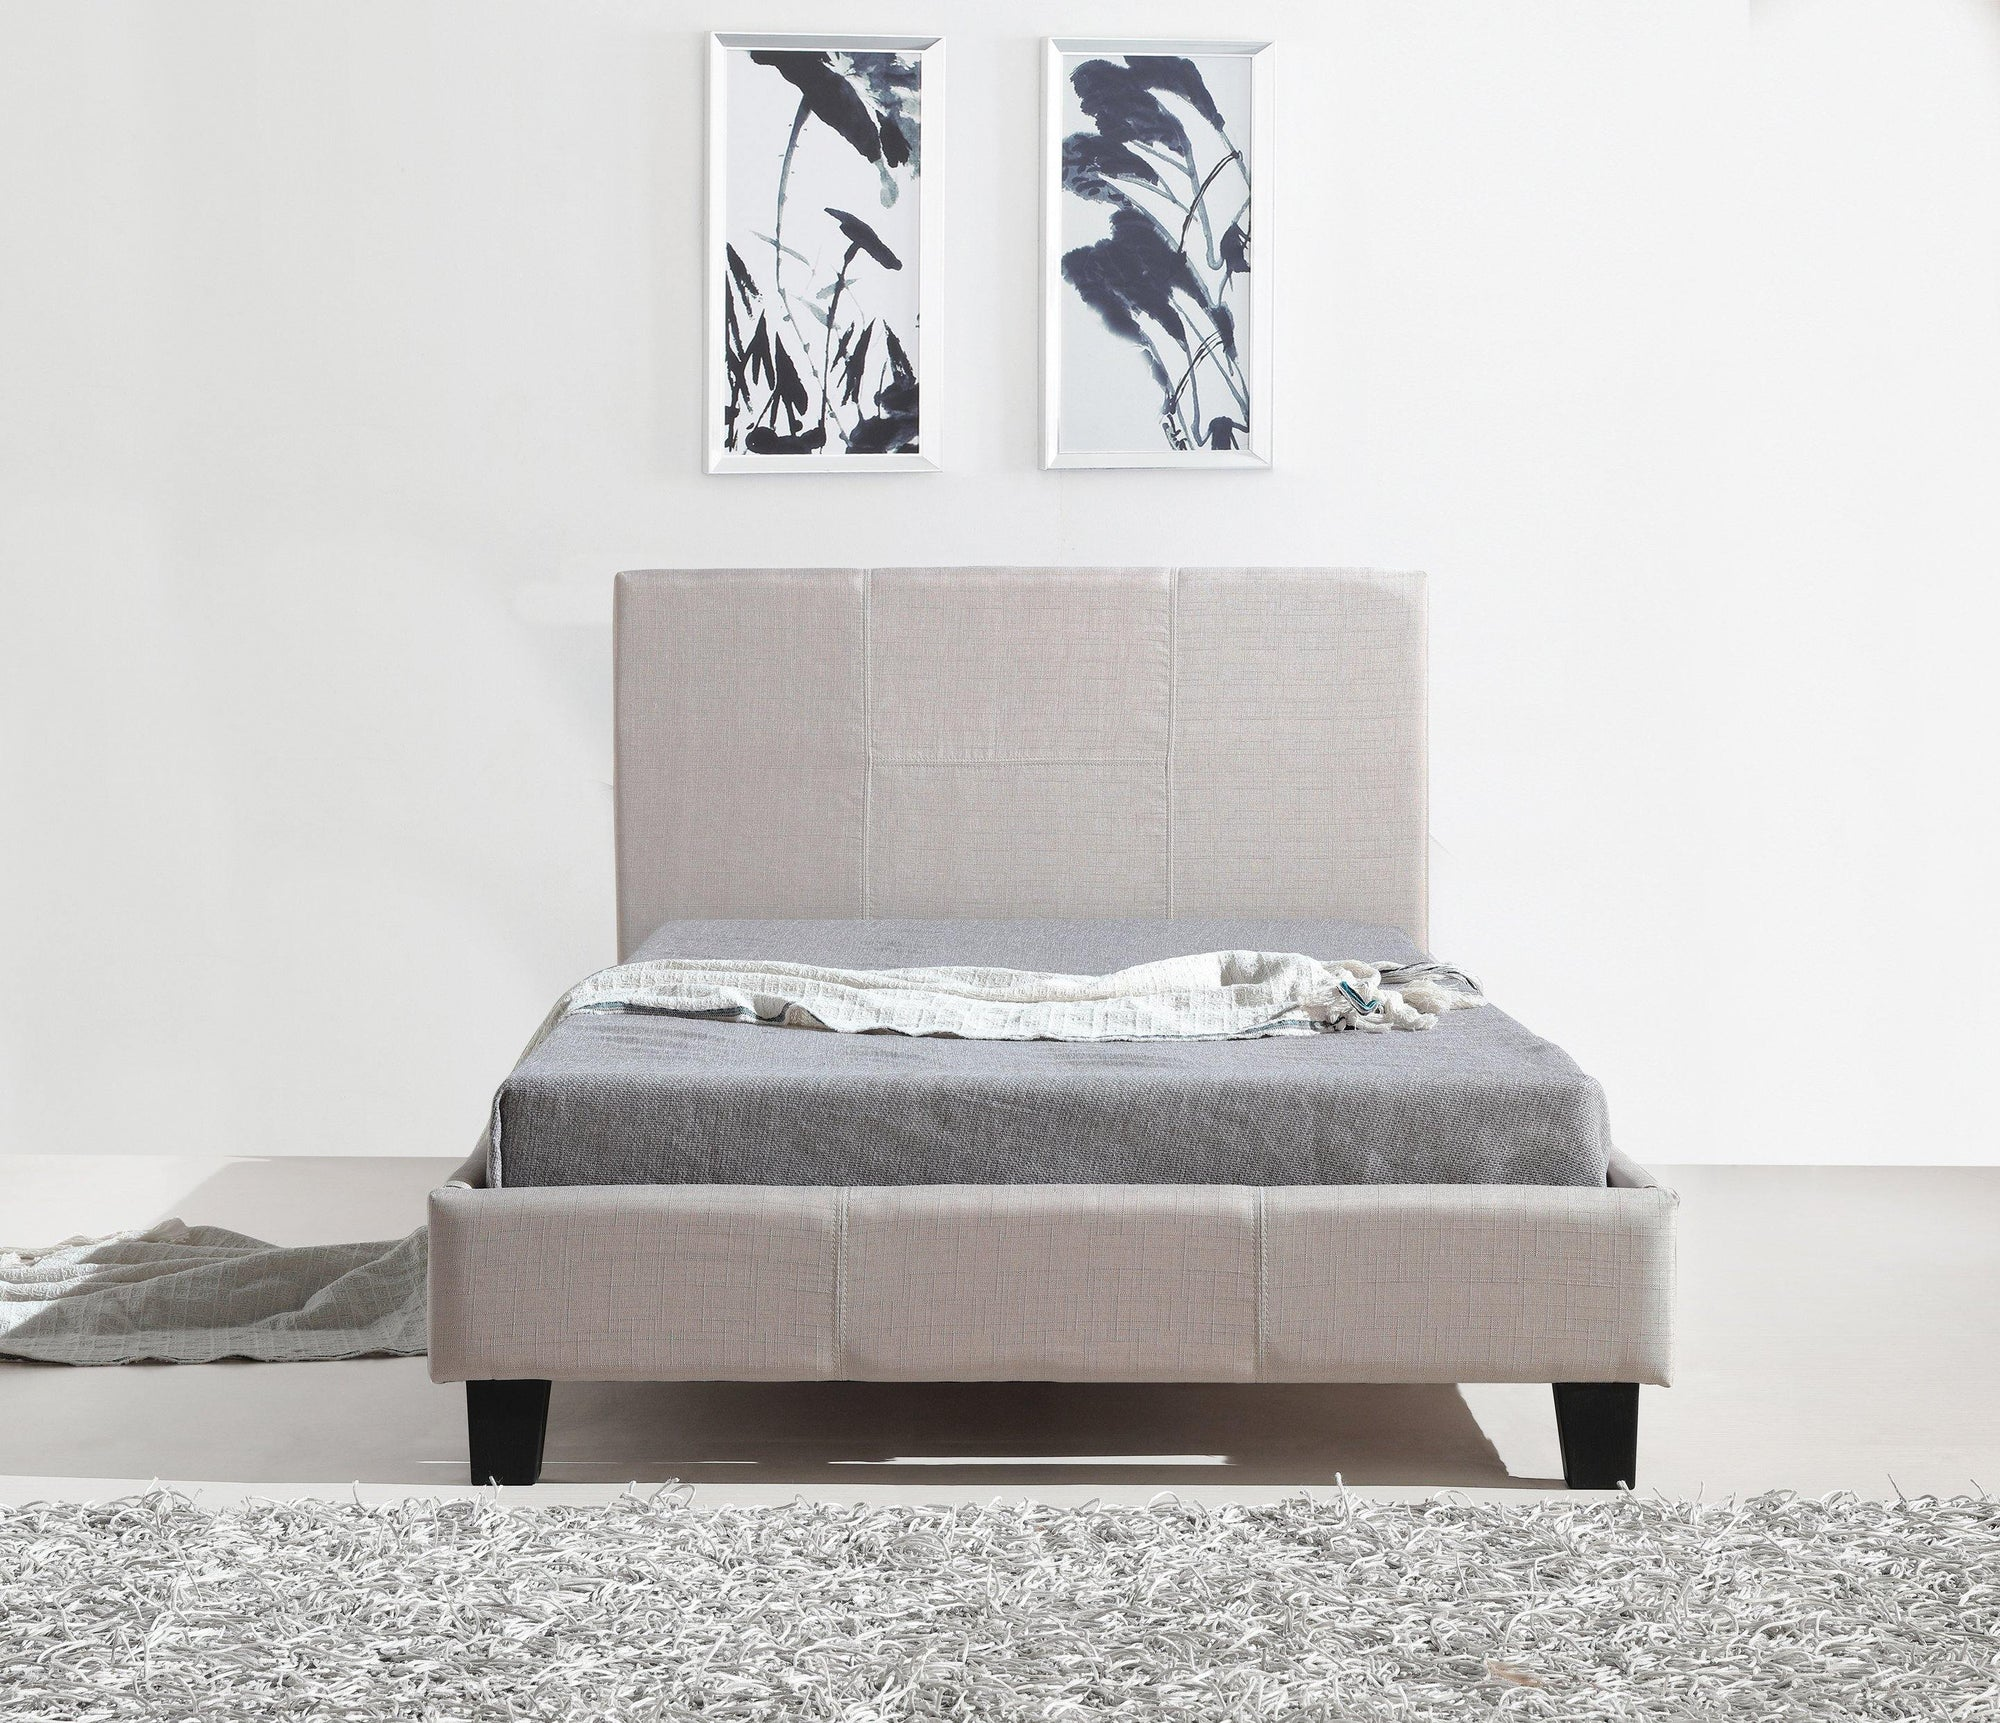 Palermo Fabric Bedframe Beige King Single - Evopia